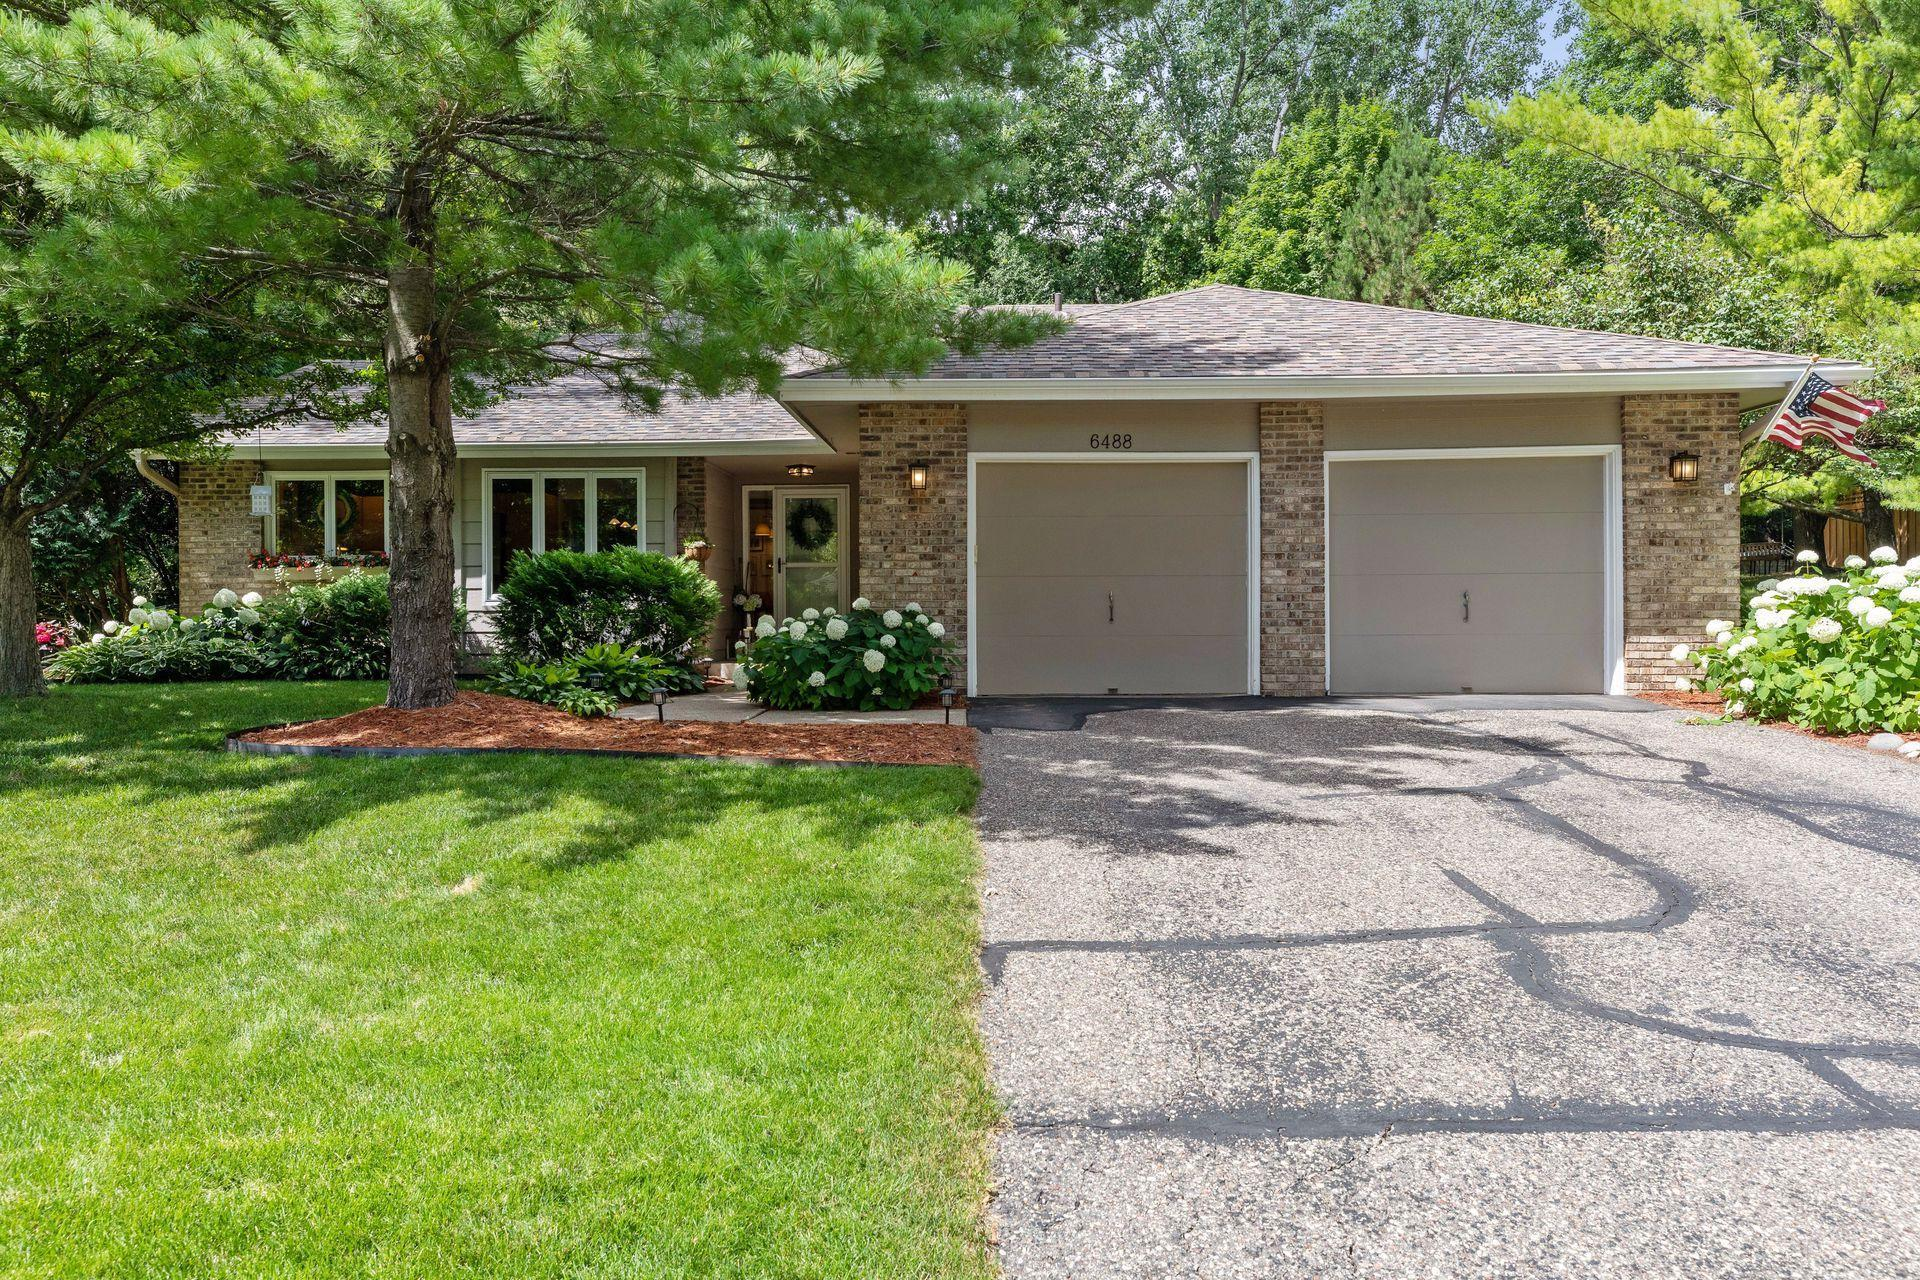 6488 Mere Drive Property Photo - Eden Prairie, MN real estate listing